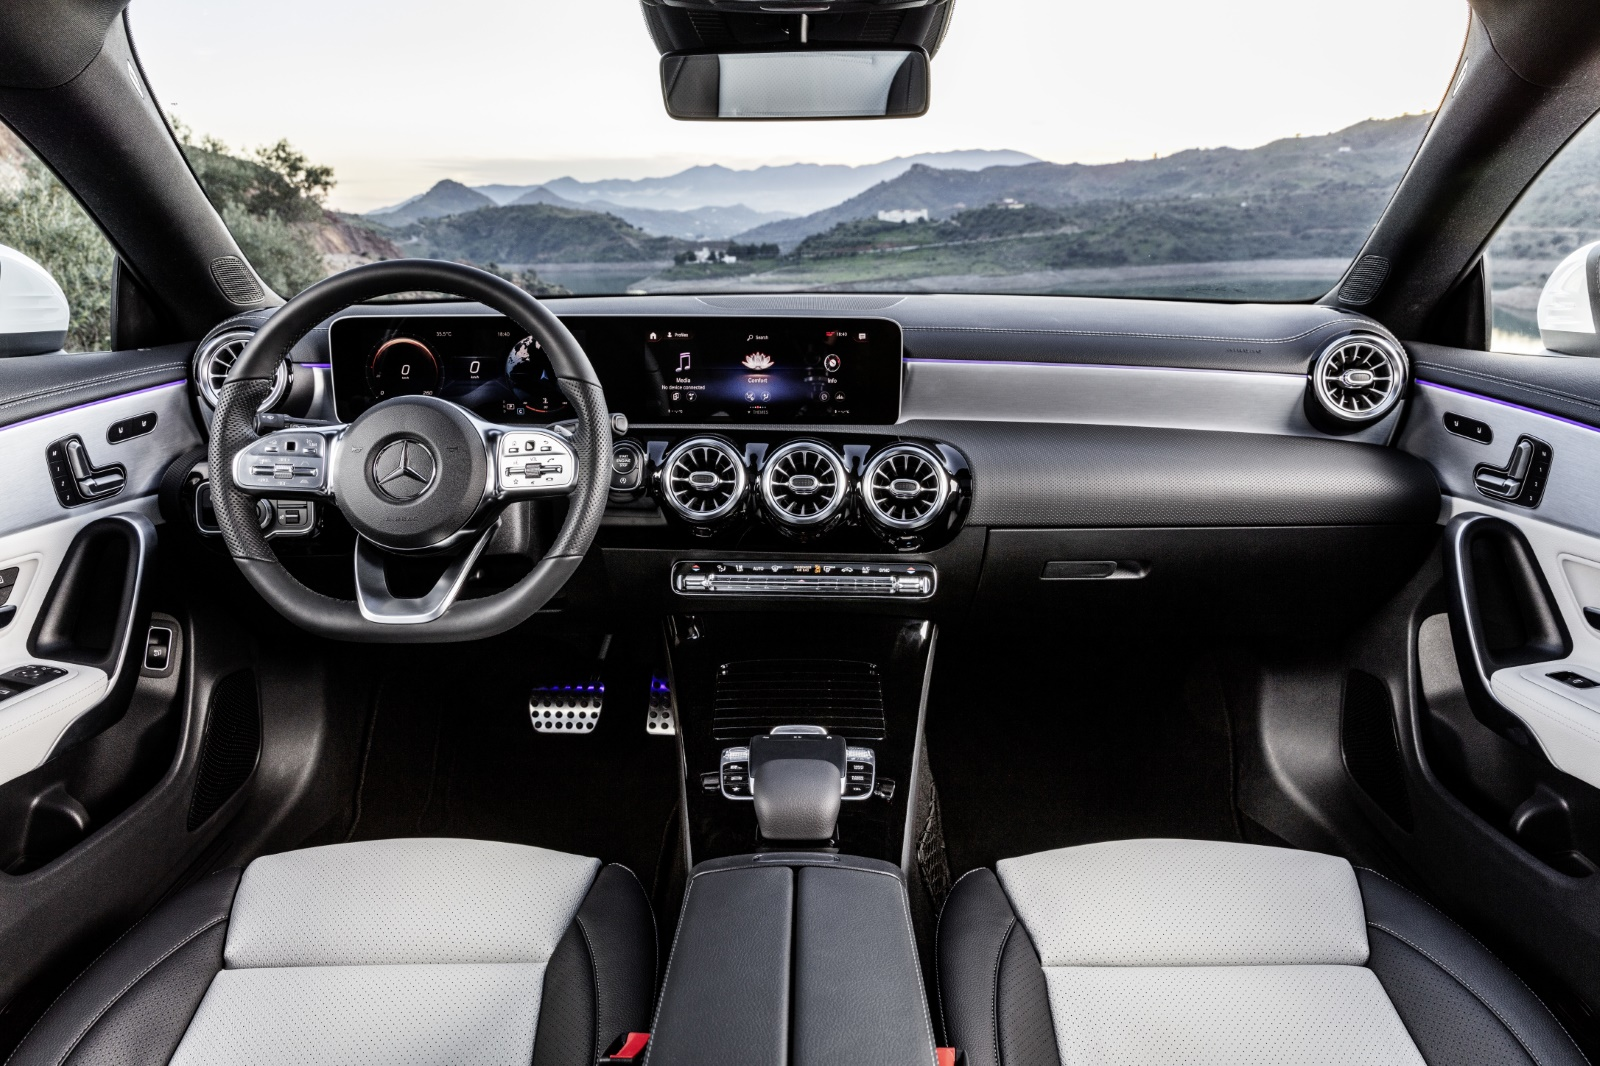 Mercedes-Benz CLA-klasse Stationwagen Interieur